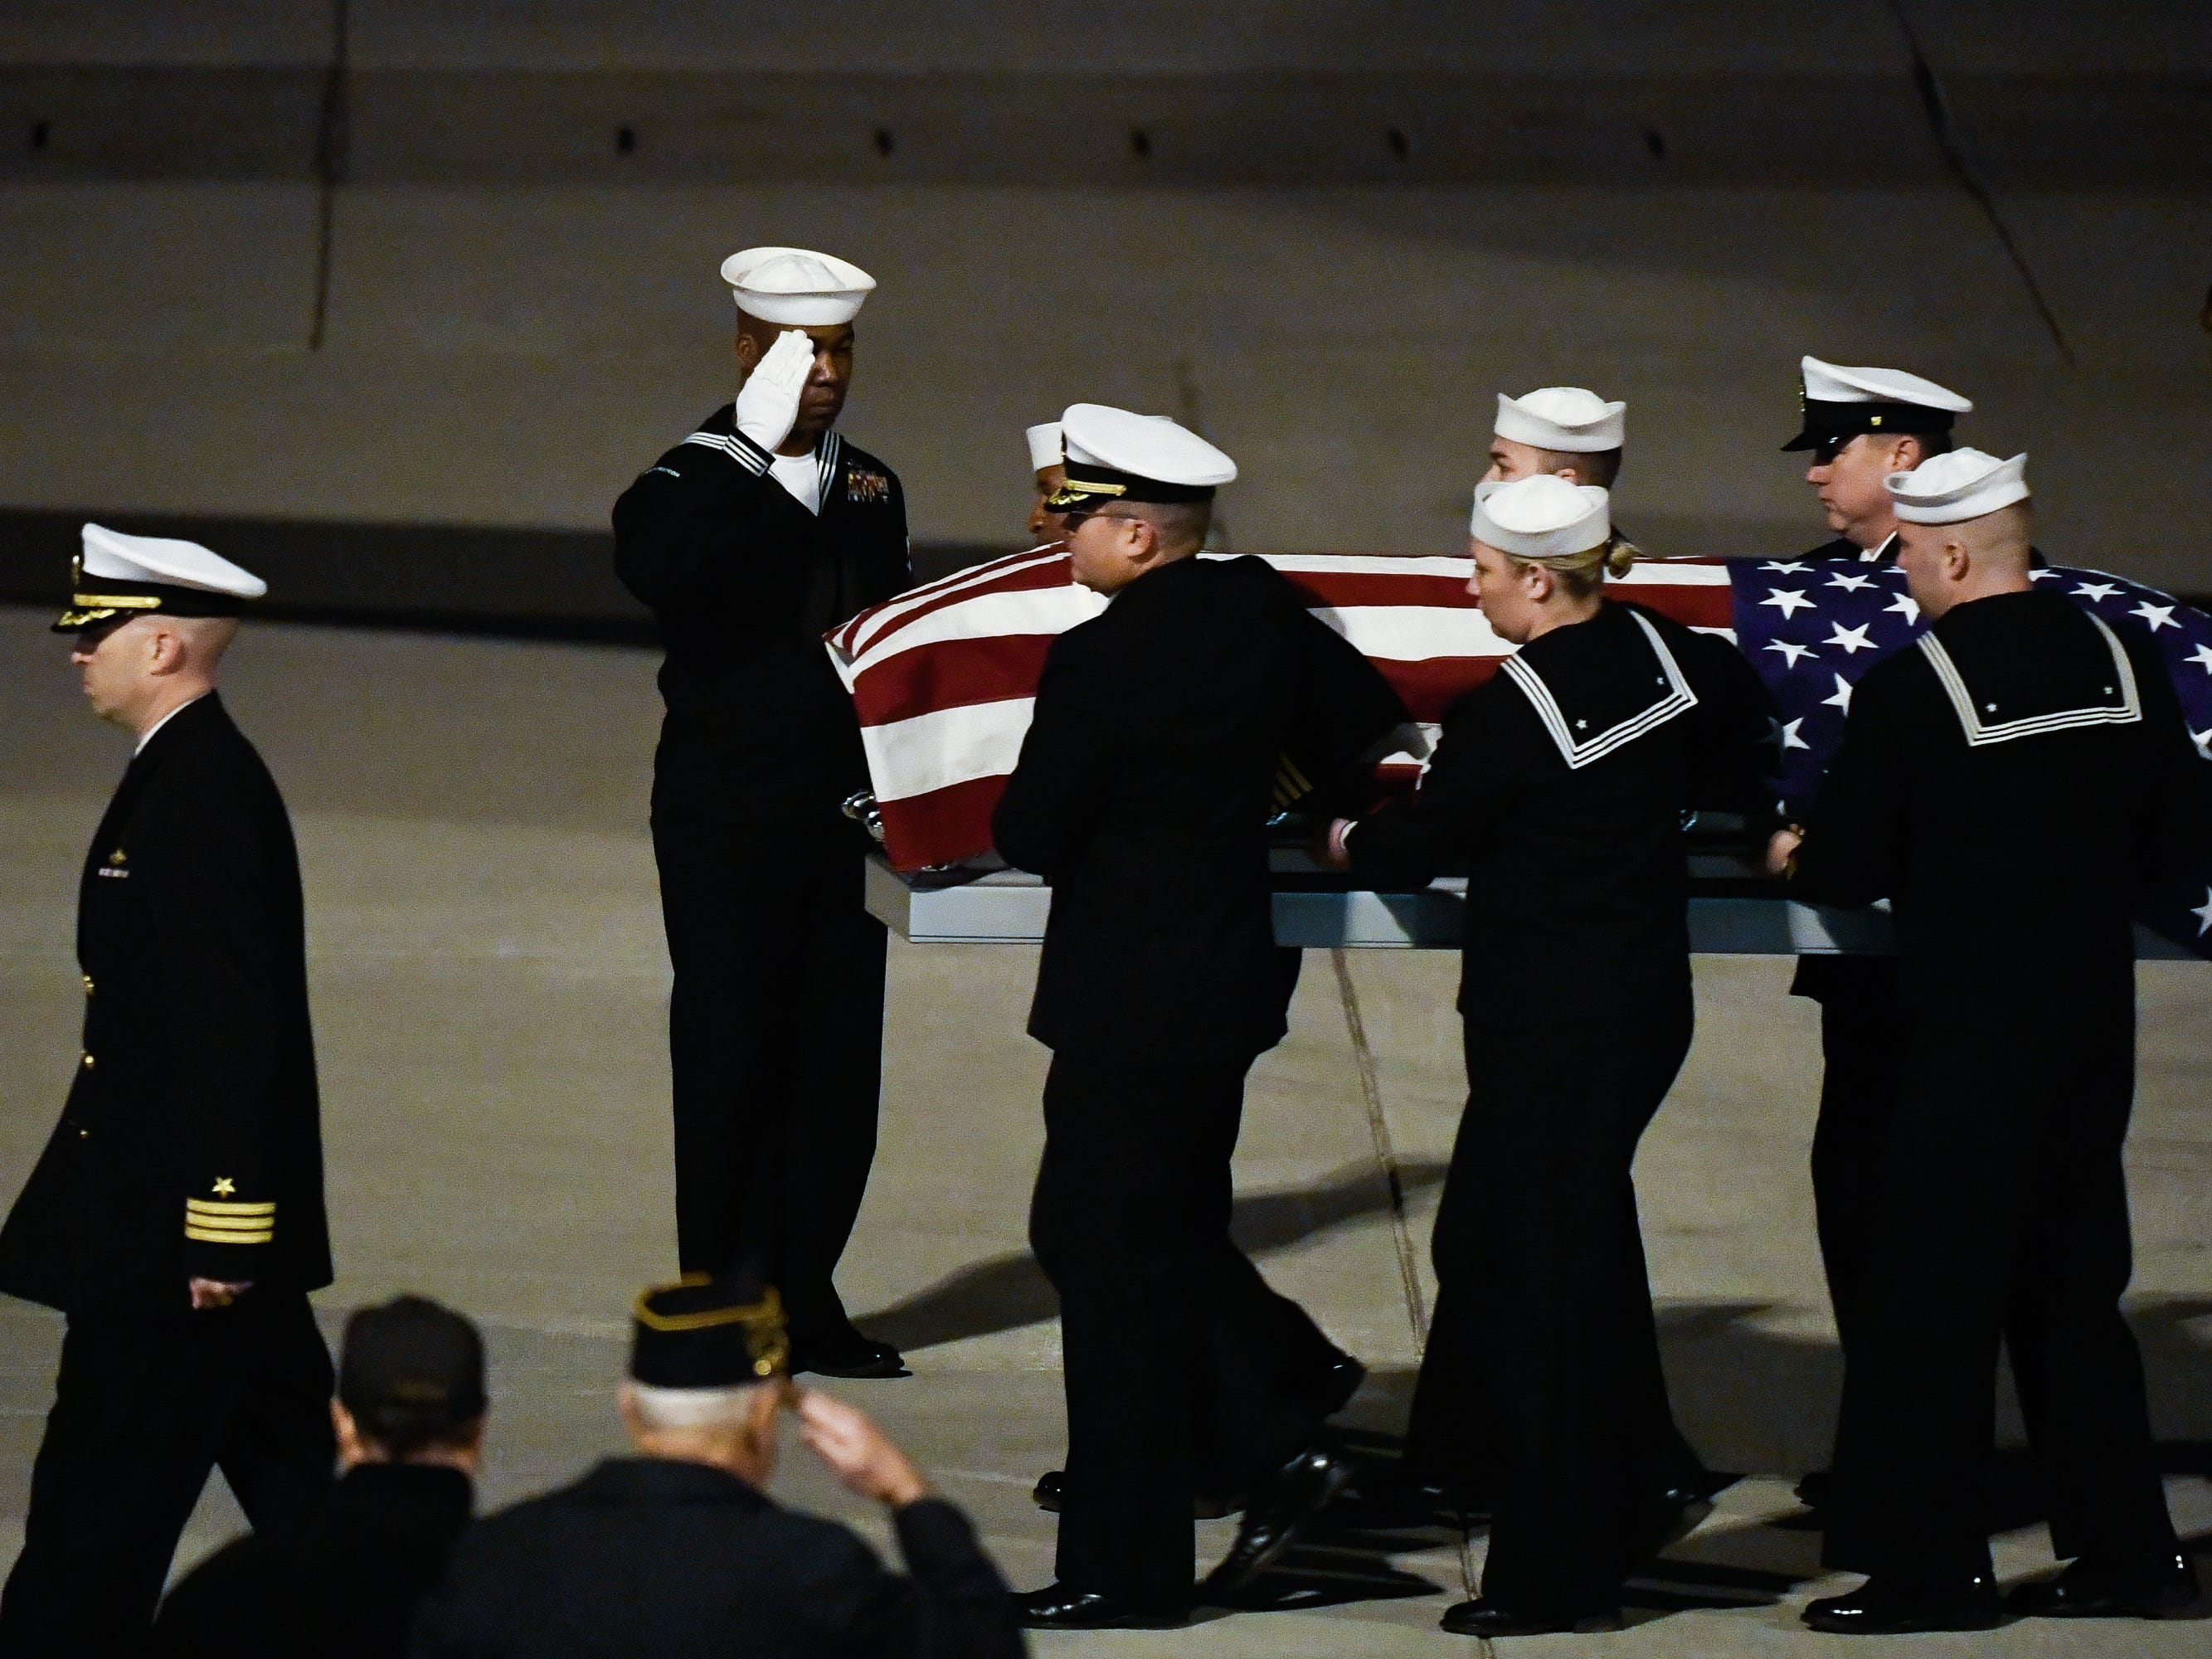 U.S. Navy Fireman 2nd Class Carl Dorr is escorted off a Delta Airlines flight and brought home on Wednesday, Dec. 5, 2018 after his remains were identified through DNA evidence nearly 77 years after his death.